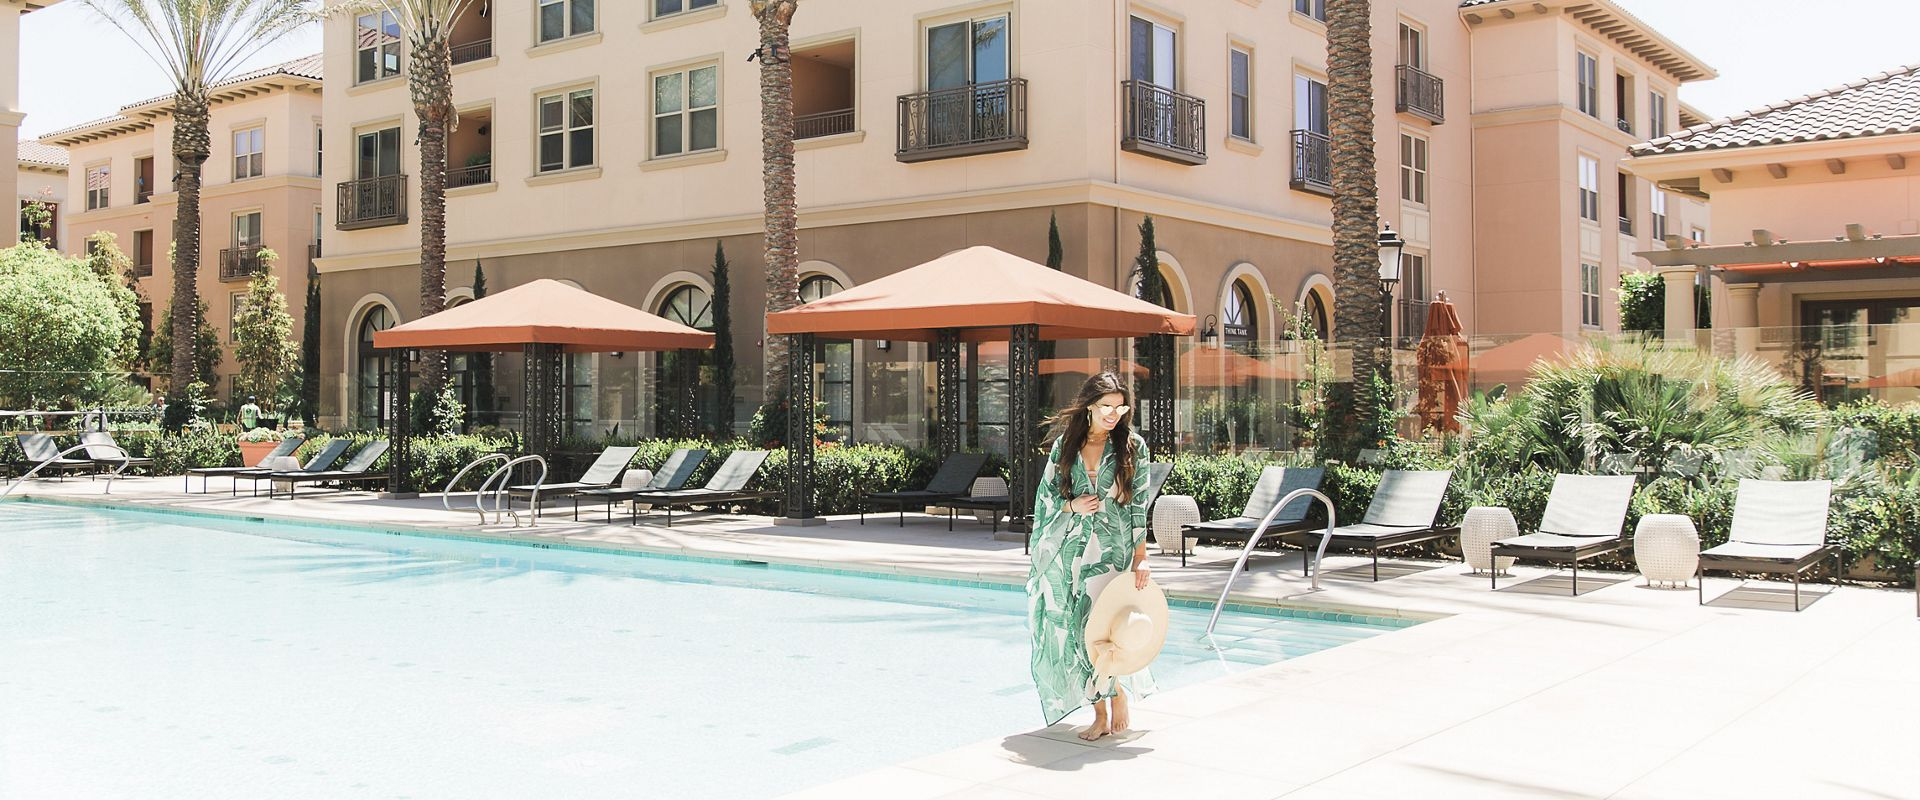 Talent relaxing at pool at Westview Apartment Communities in Irvine.